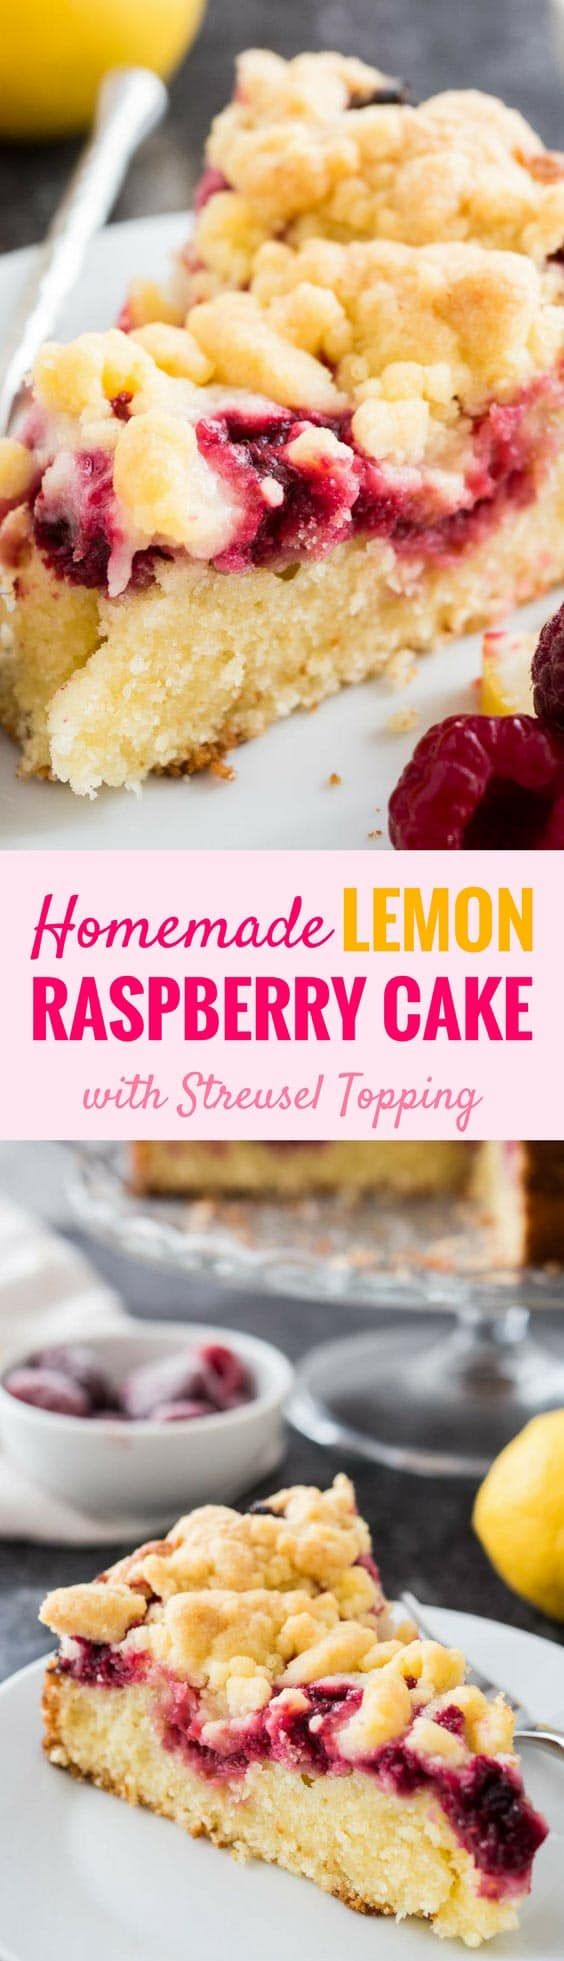 This easy Lemon Raspberry Cake is topped with delicious cookie-like streusel and filled with juicy raspberries! A buttery and moist lemon coffee cake with a layer of delicious raspberry filling that is perfect for spring and summer. Your guests will be begging you for the recipe! #CoffeeCakeRecipe #LemonRaspberryCake #LemonCrumbCake #SummerRecipes #CakeRecipes